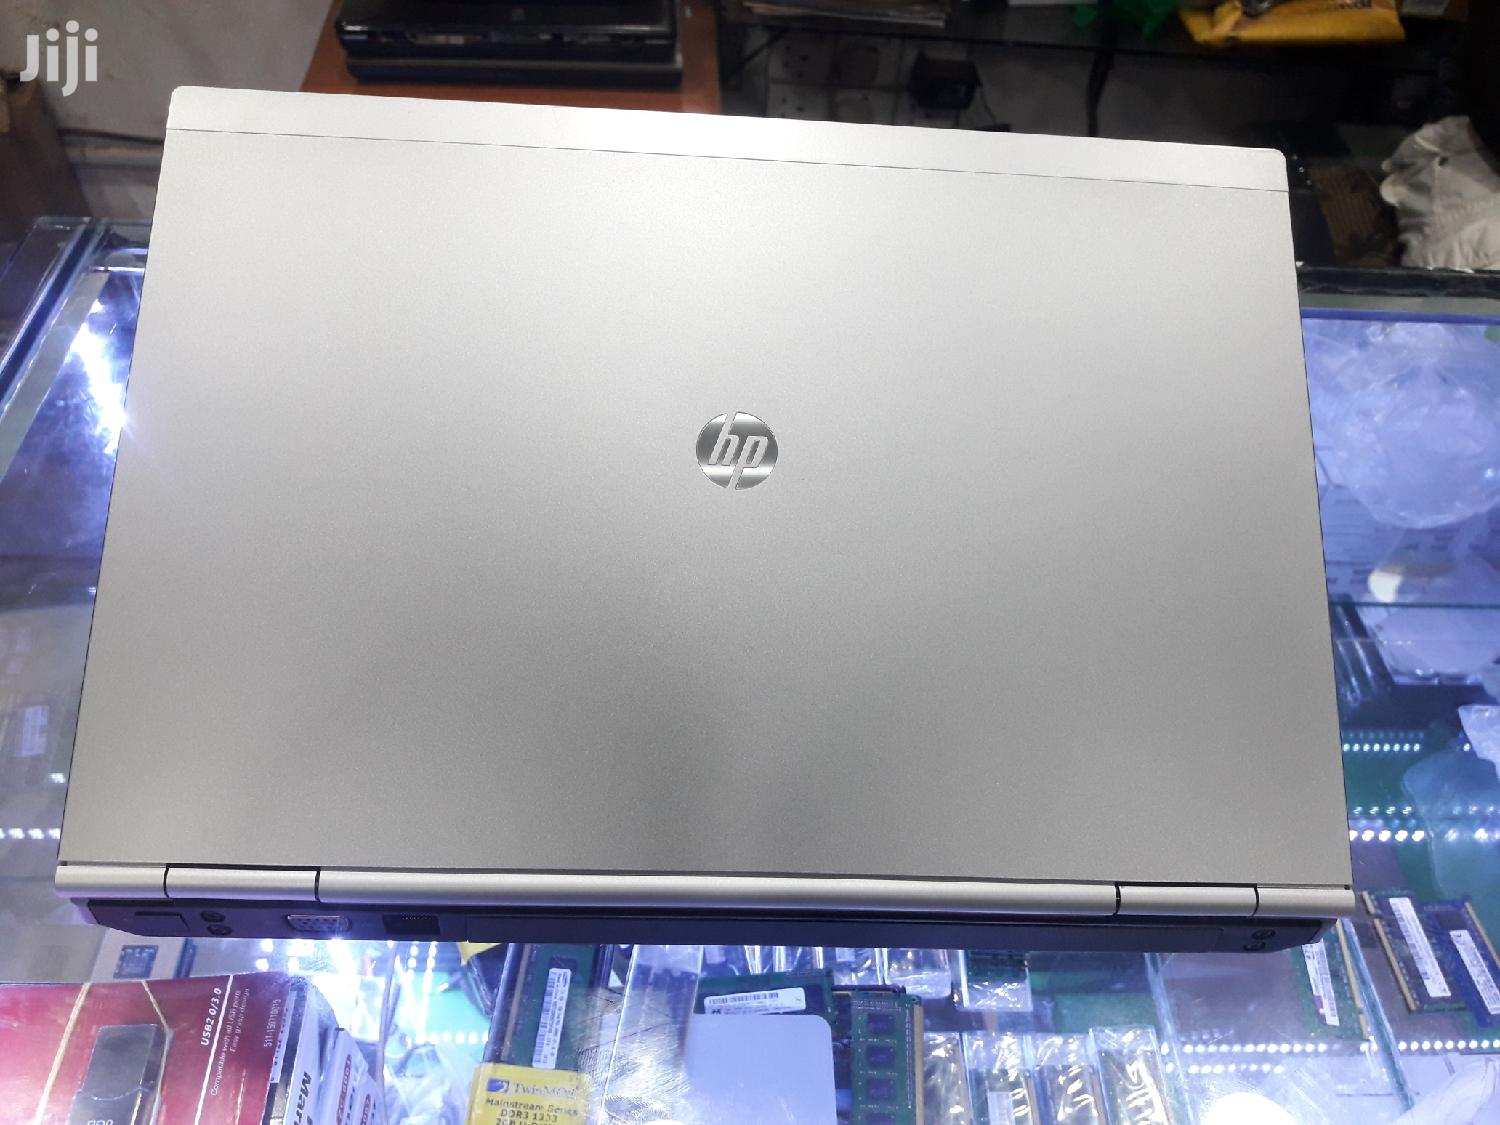 Archive: Affordable HP Elite Book 500GB HDD Core i5 4GB RAM